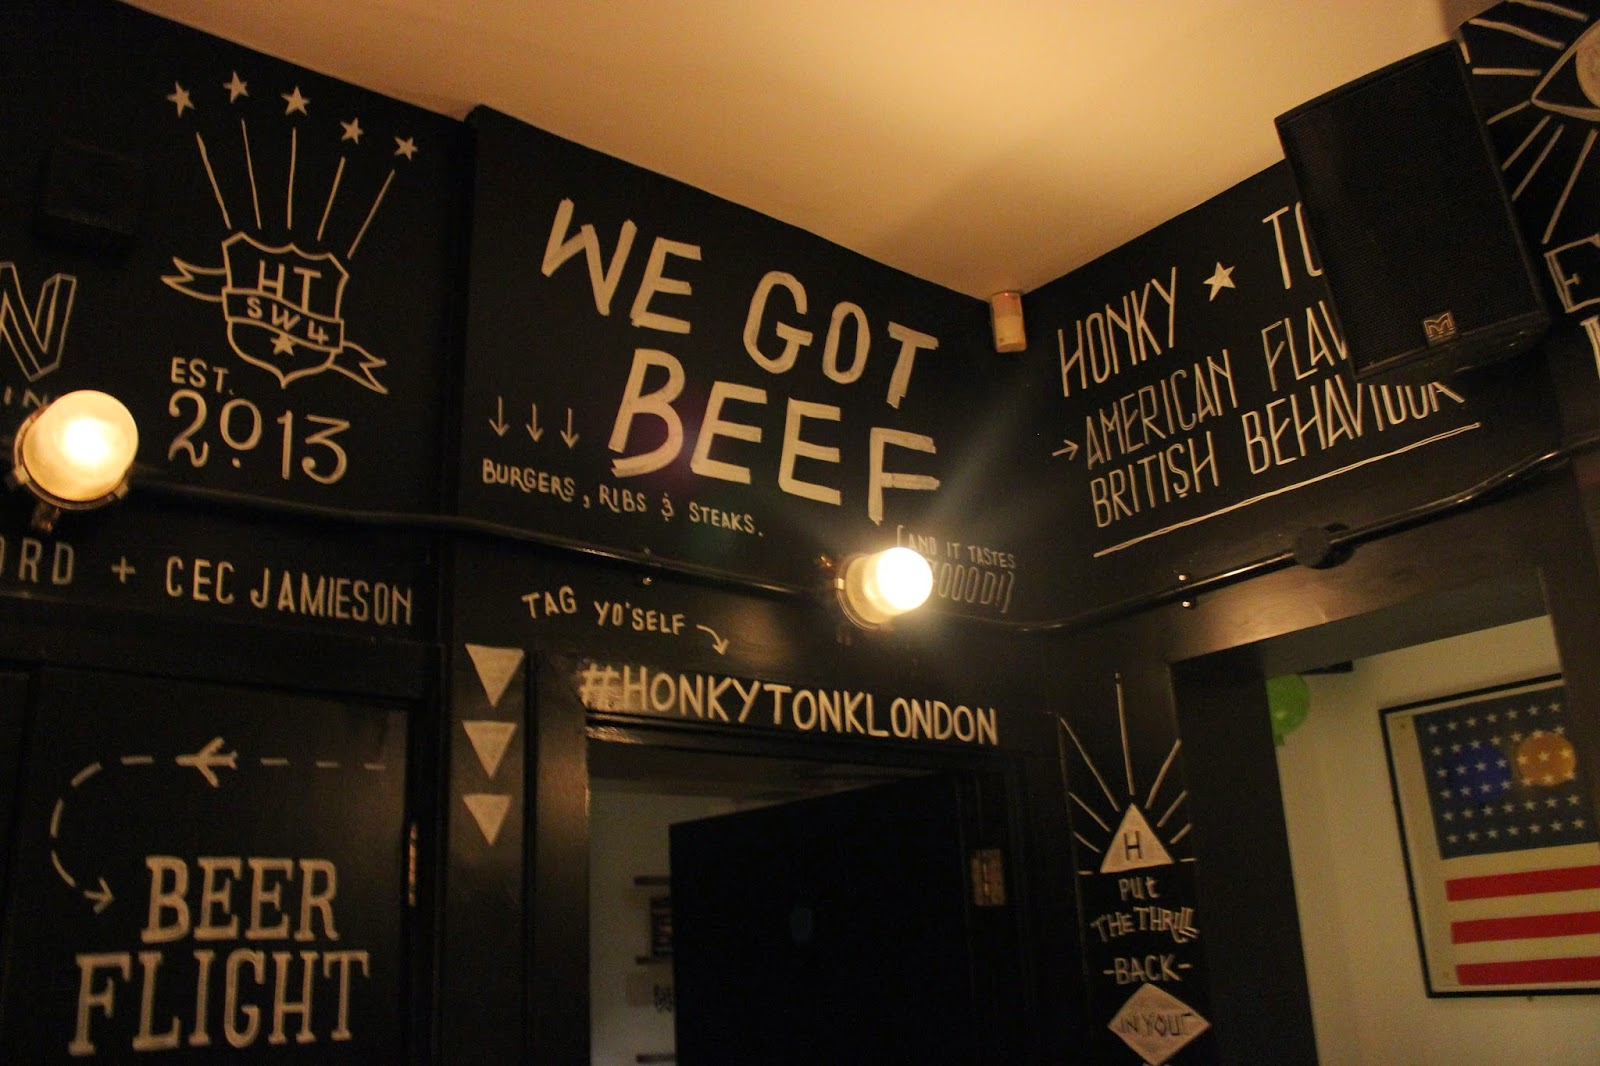 Honky Tonk, Clapham, London, That Guy Luke, Blog, South London, London Restaurants, London Burger Places, Eating and Drinking, Narnia, Date, Dinner Date, Chelsea